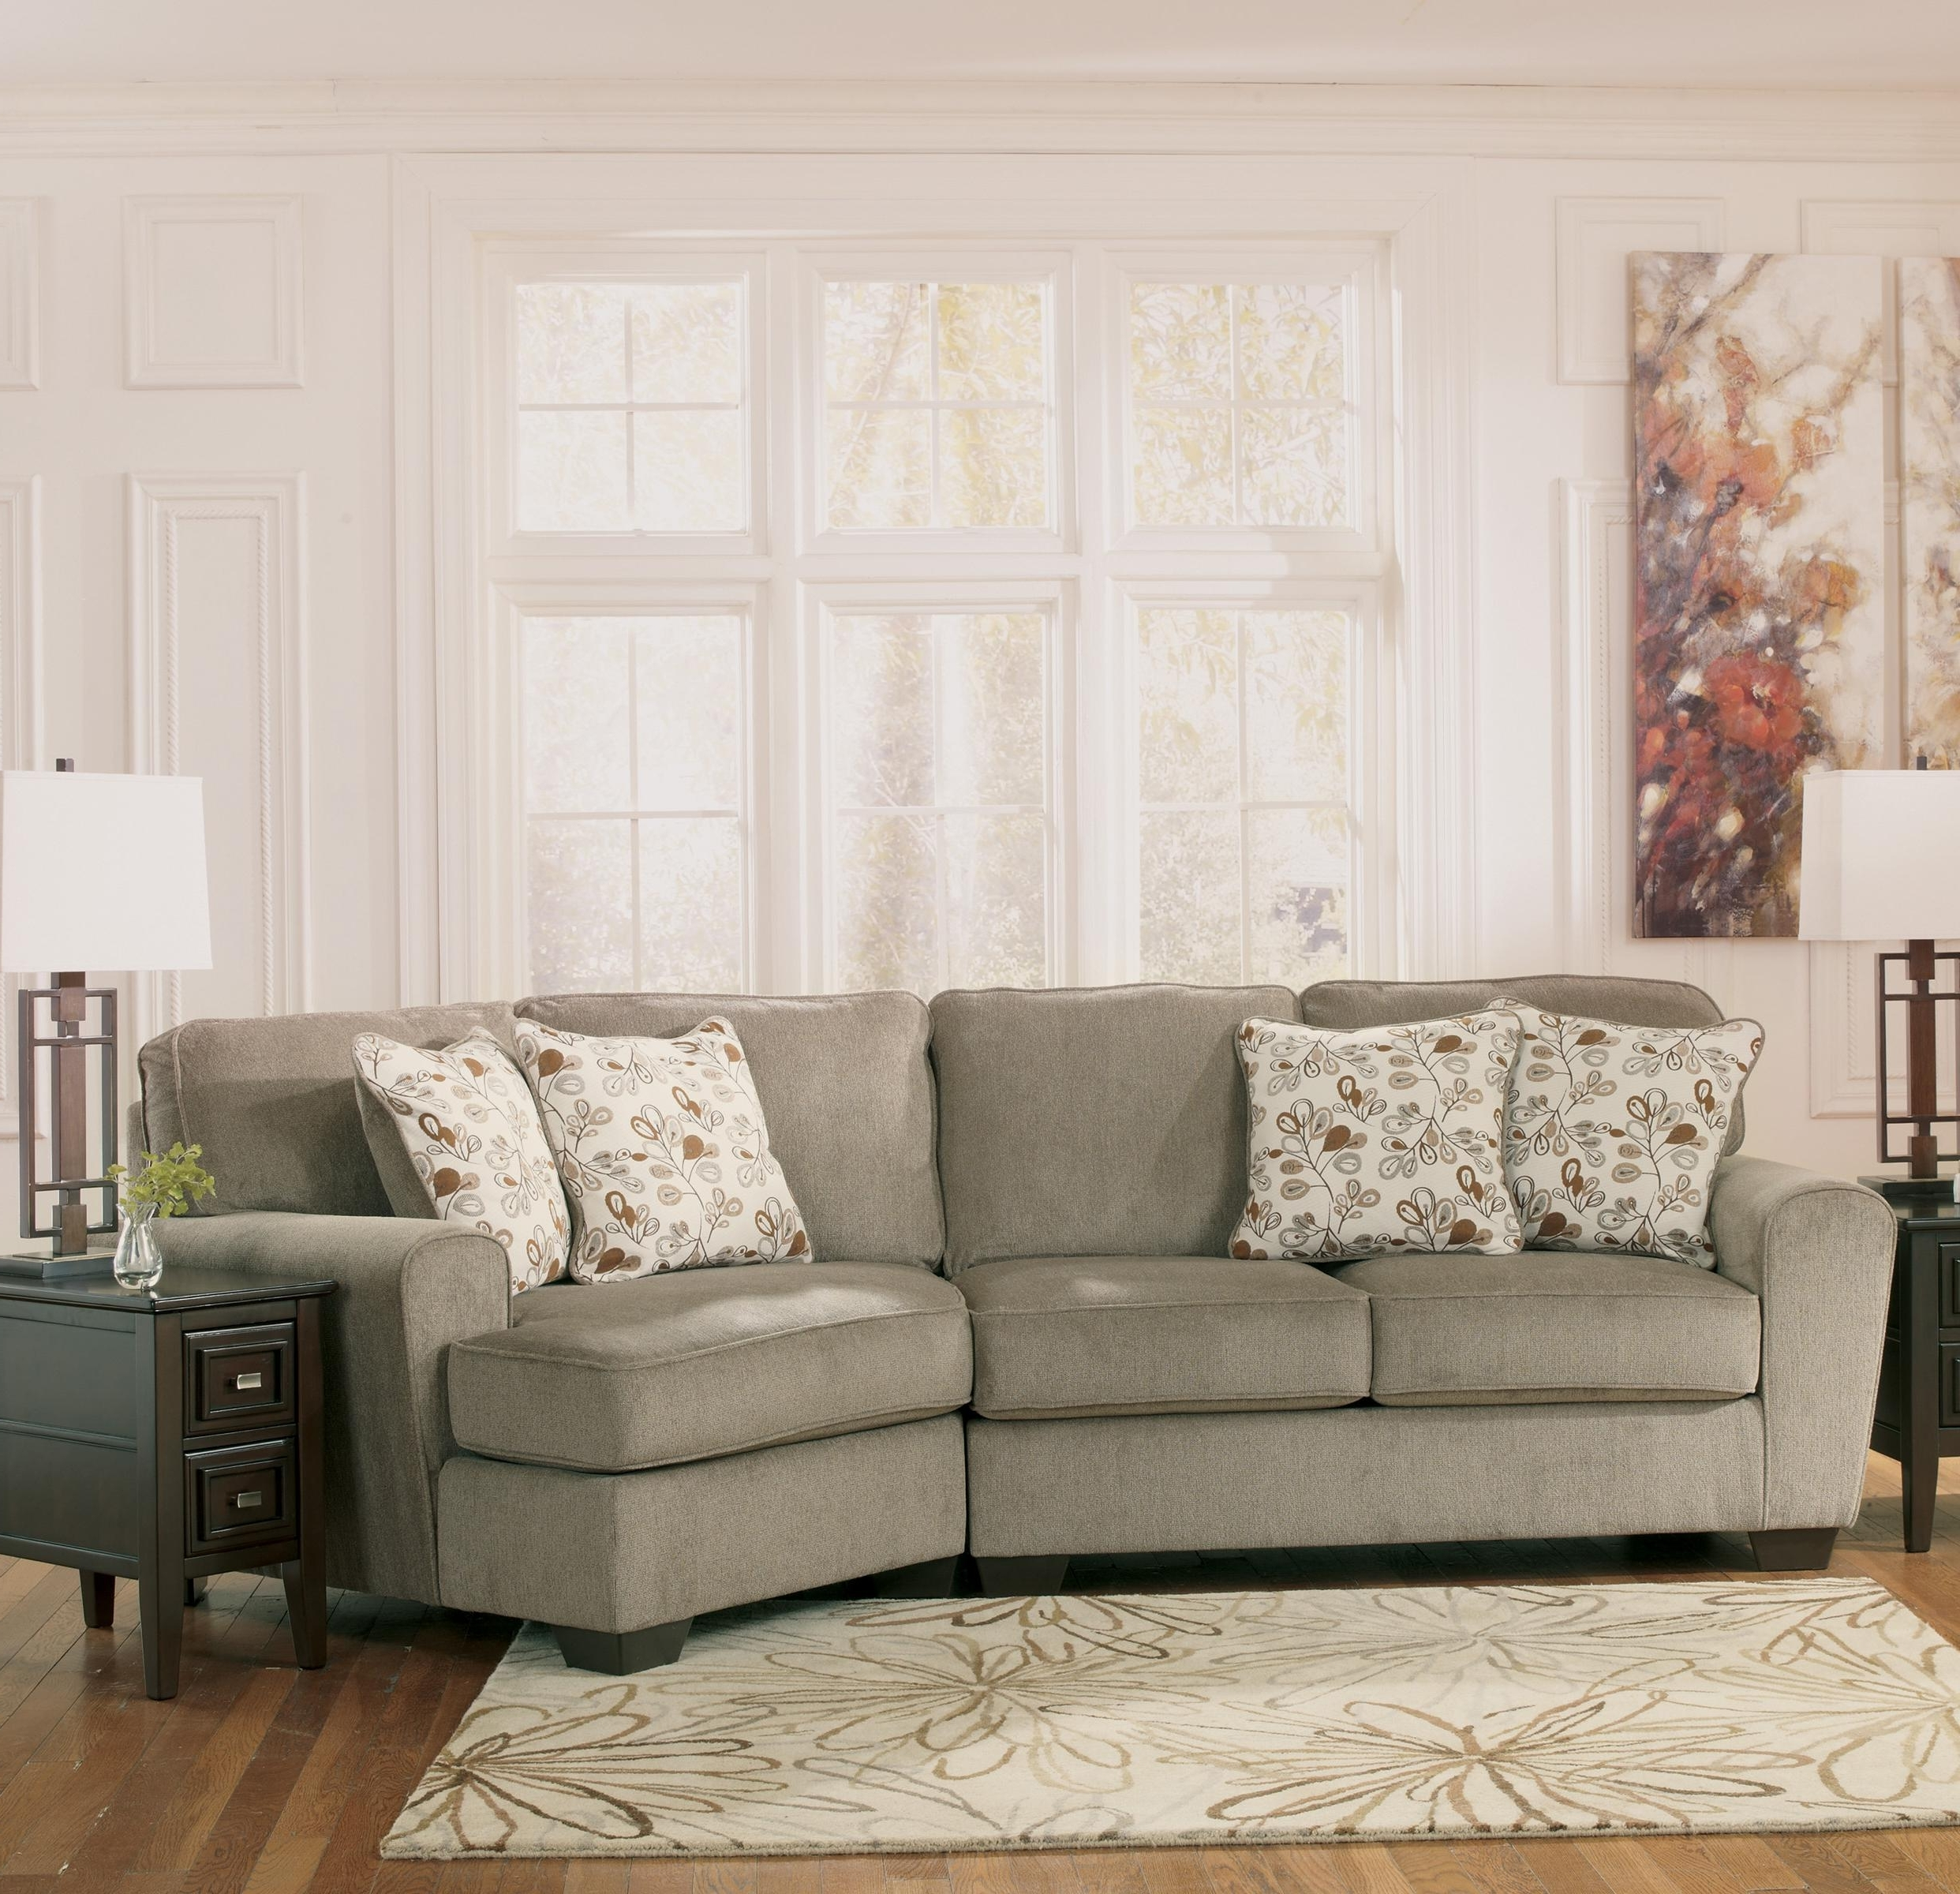 Ashley Furniture Patola Park – Patina 2 Piece Sectional With Right For Popular Sectional Sofas With Cuddler (View 15 of 20)